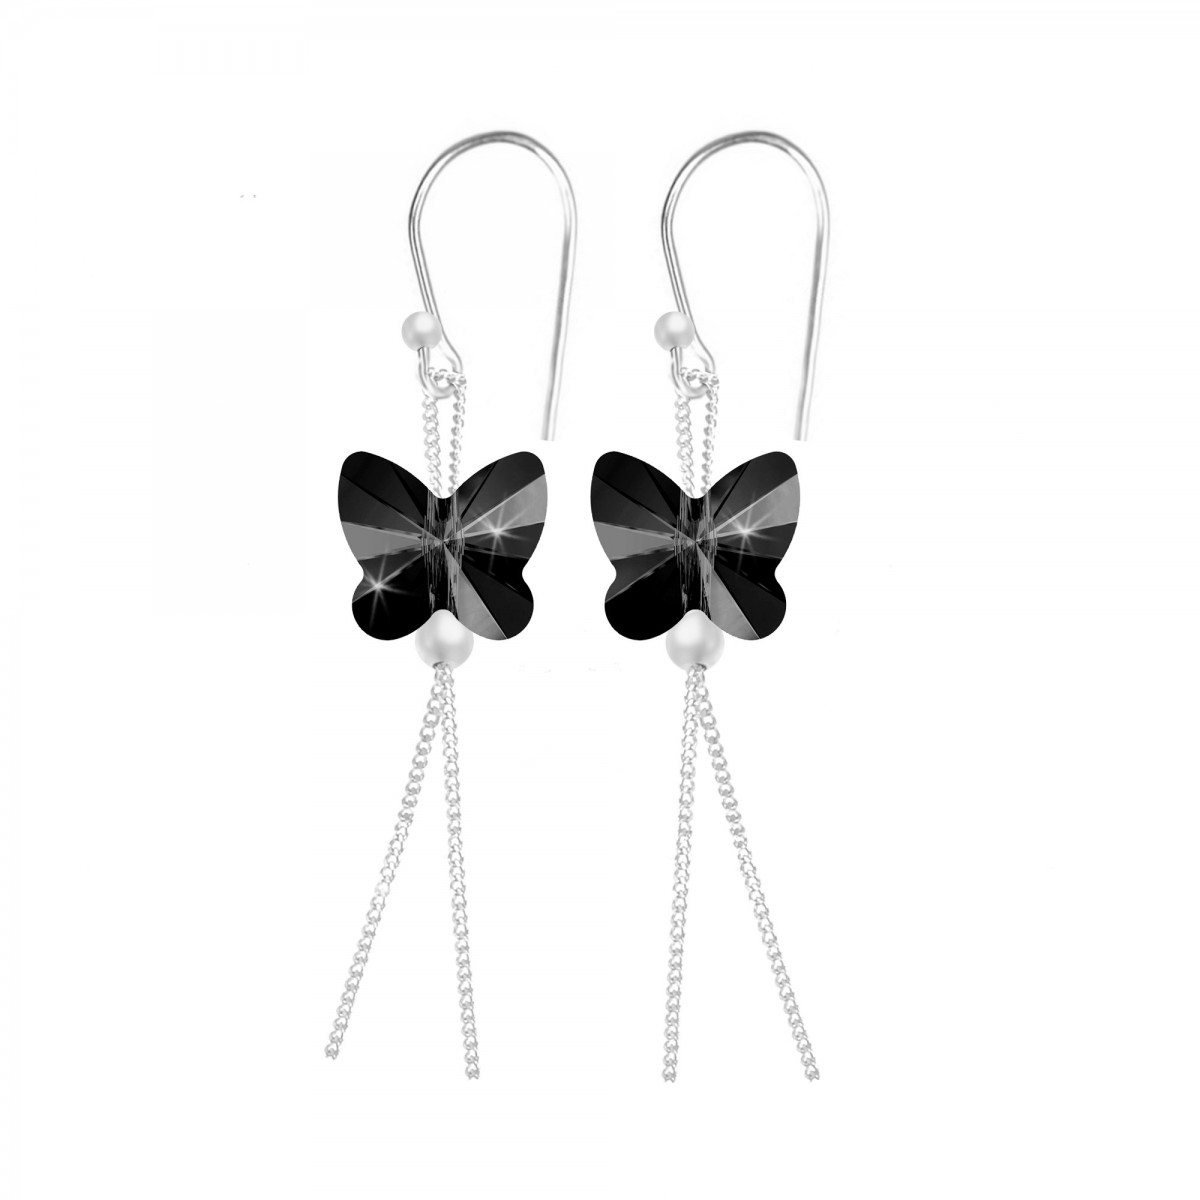 Boucles d'oreilles So Charm ornées de papillons noirs made with crystal from Swarovski